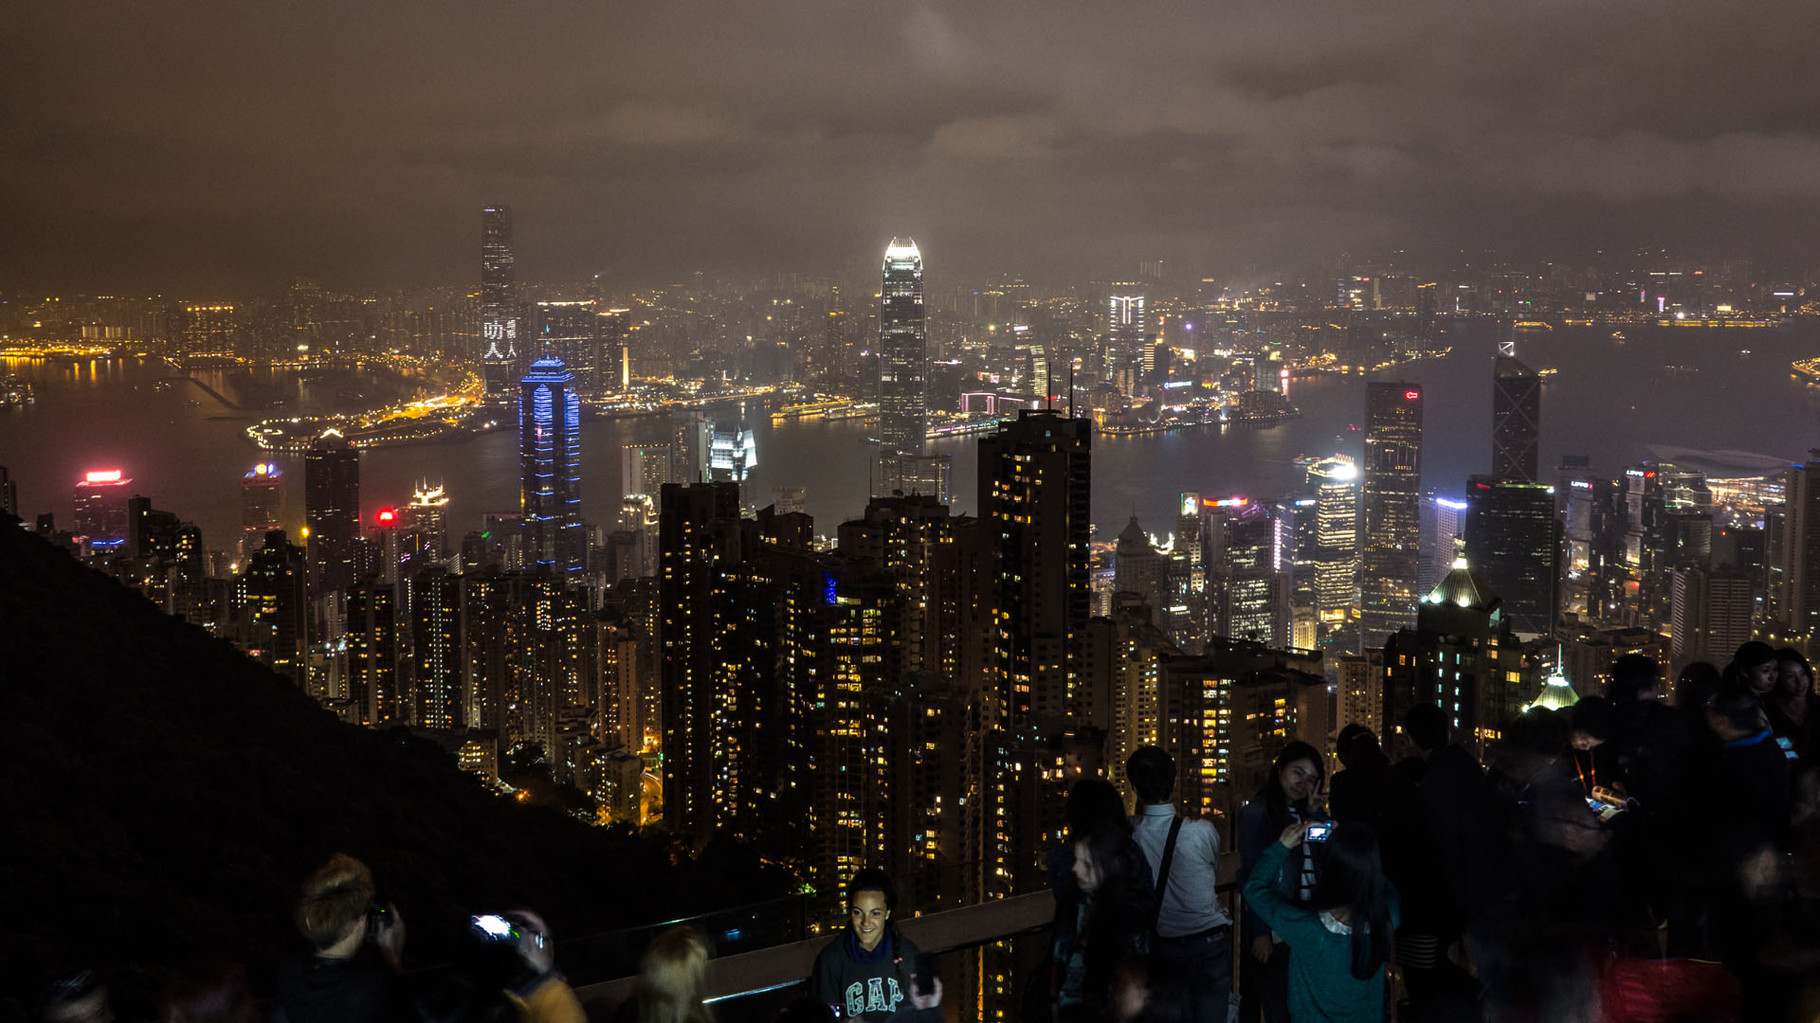 Hongkong skyline, photographed from Sky terrace